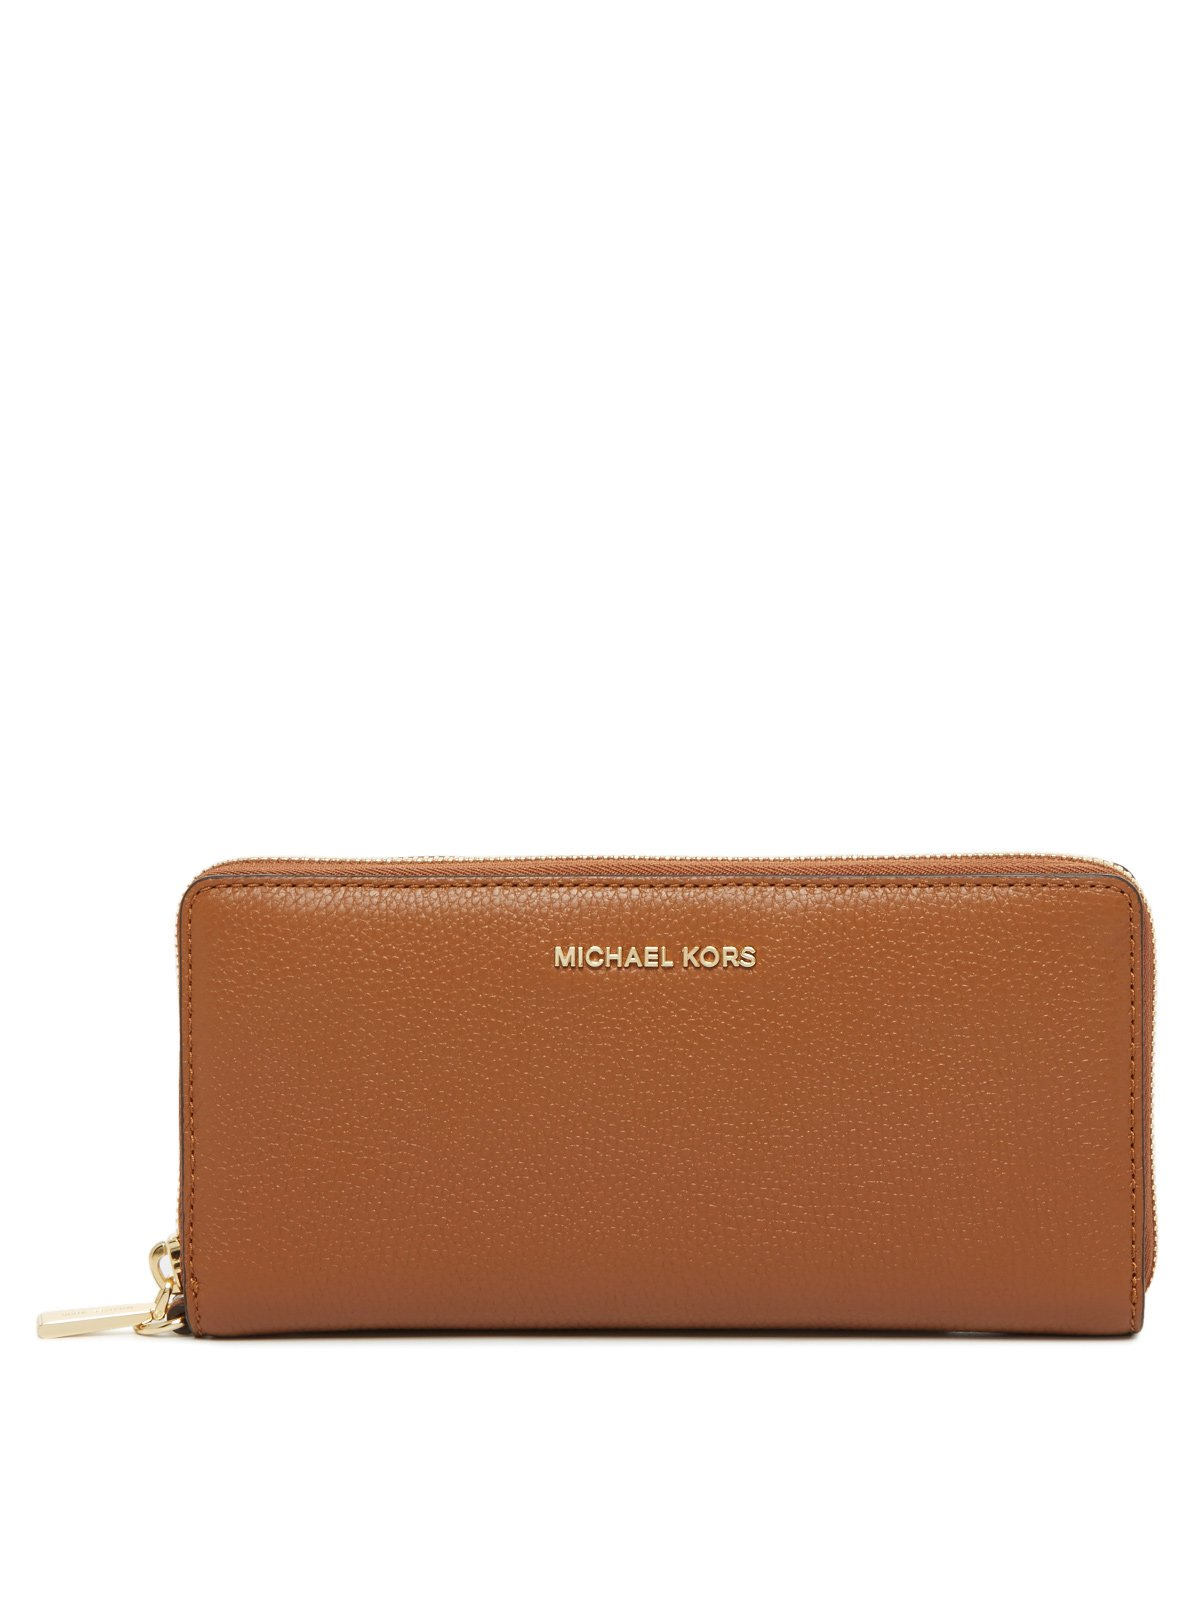 Michael Kors Mercer Zip Around Travel Continental Leather Wallet (Luggage) by Michael Kors